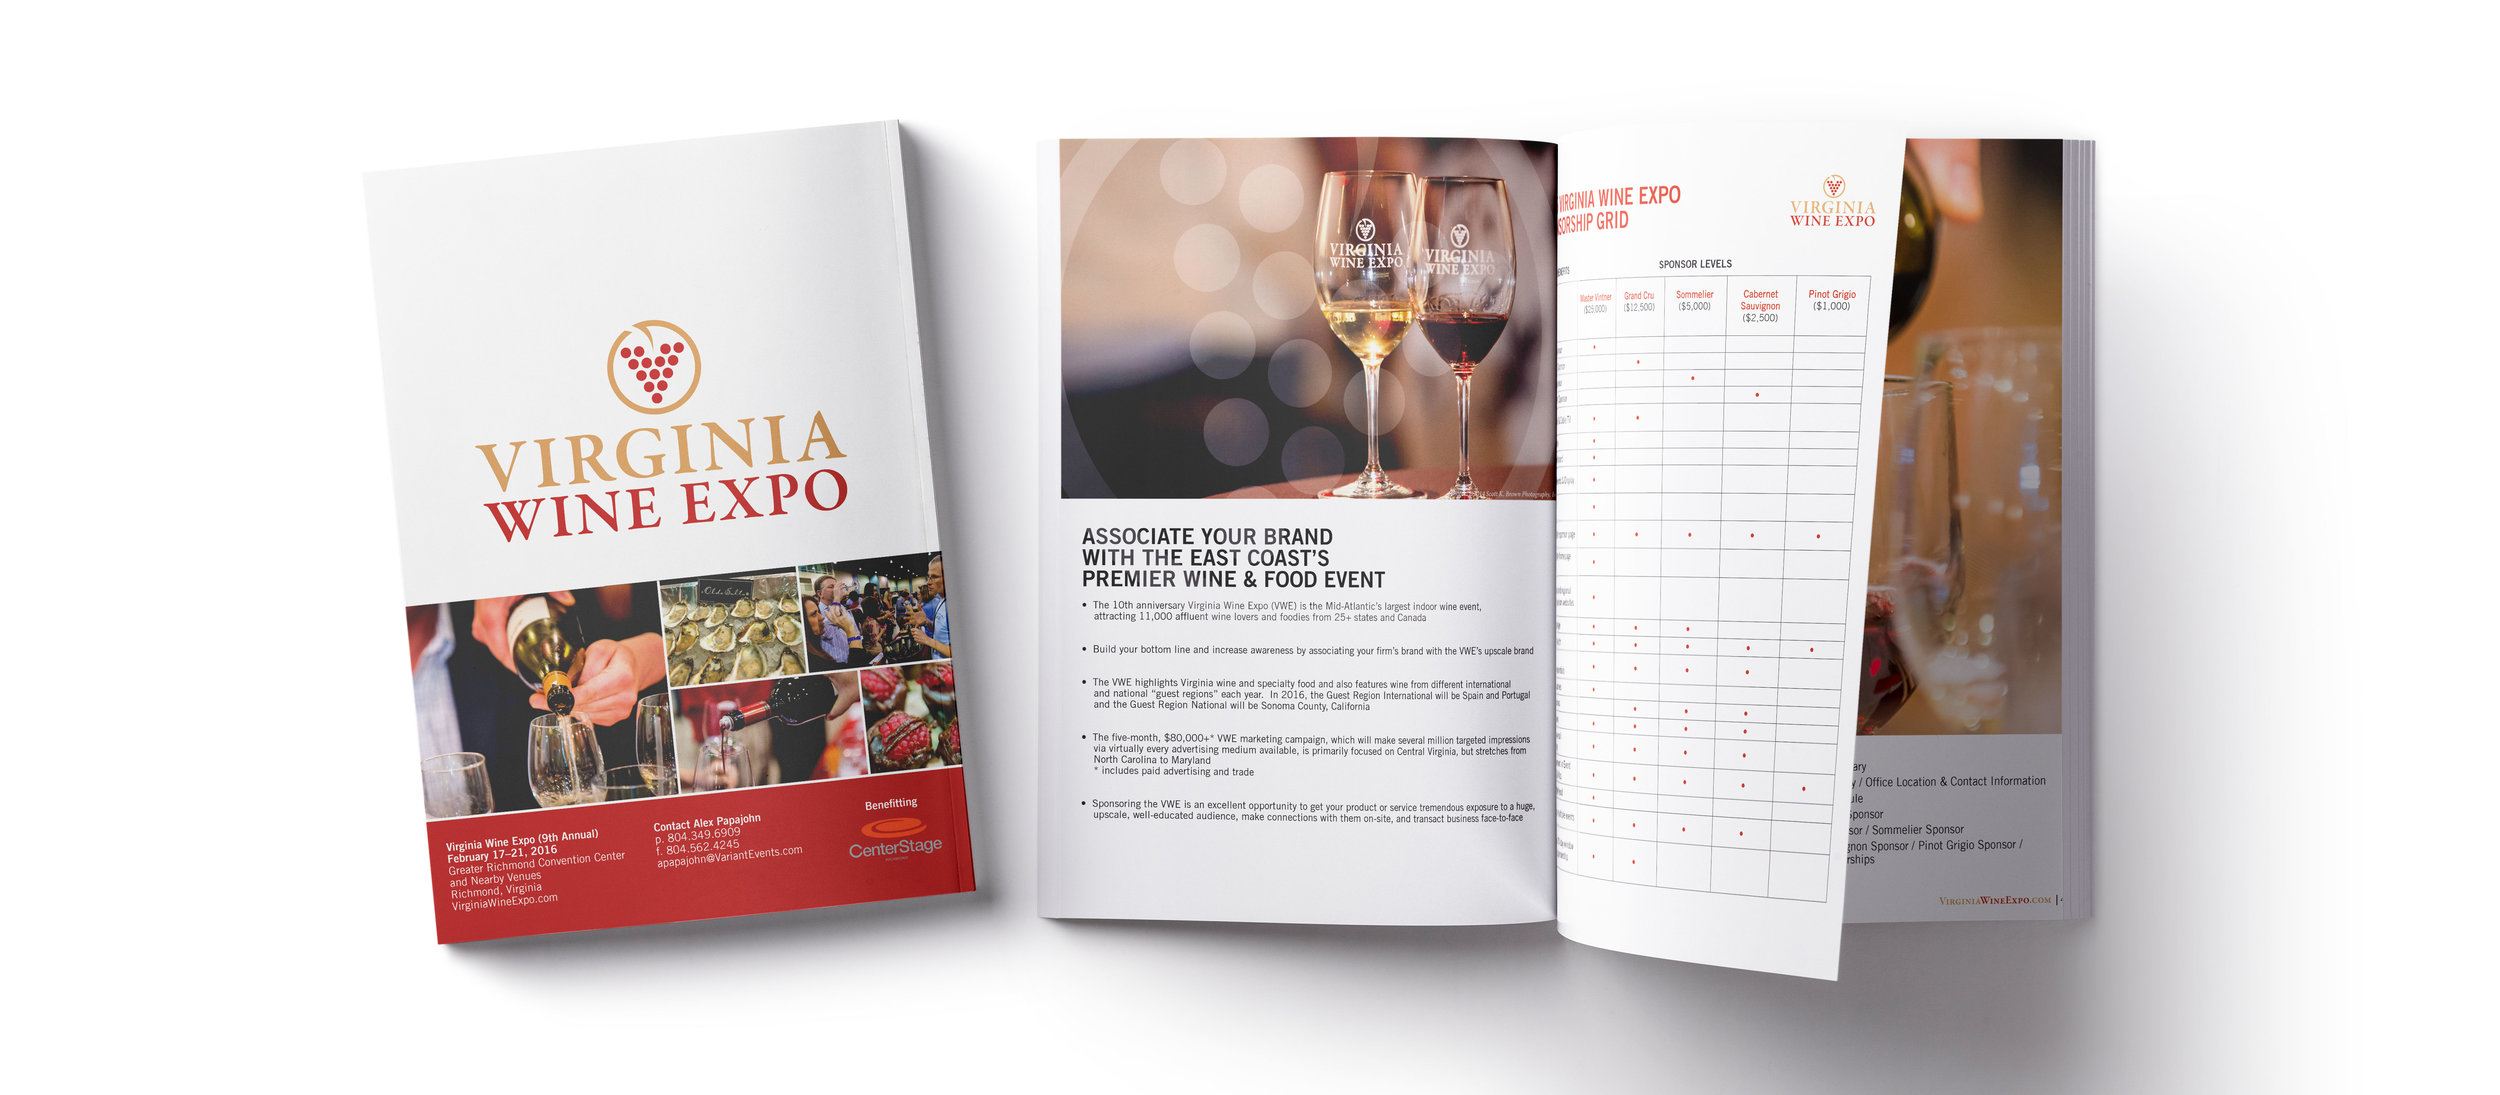 Virginia Wine Expo Sponsorship Guide - Graphic Design